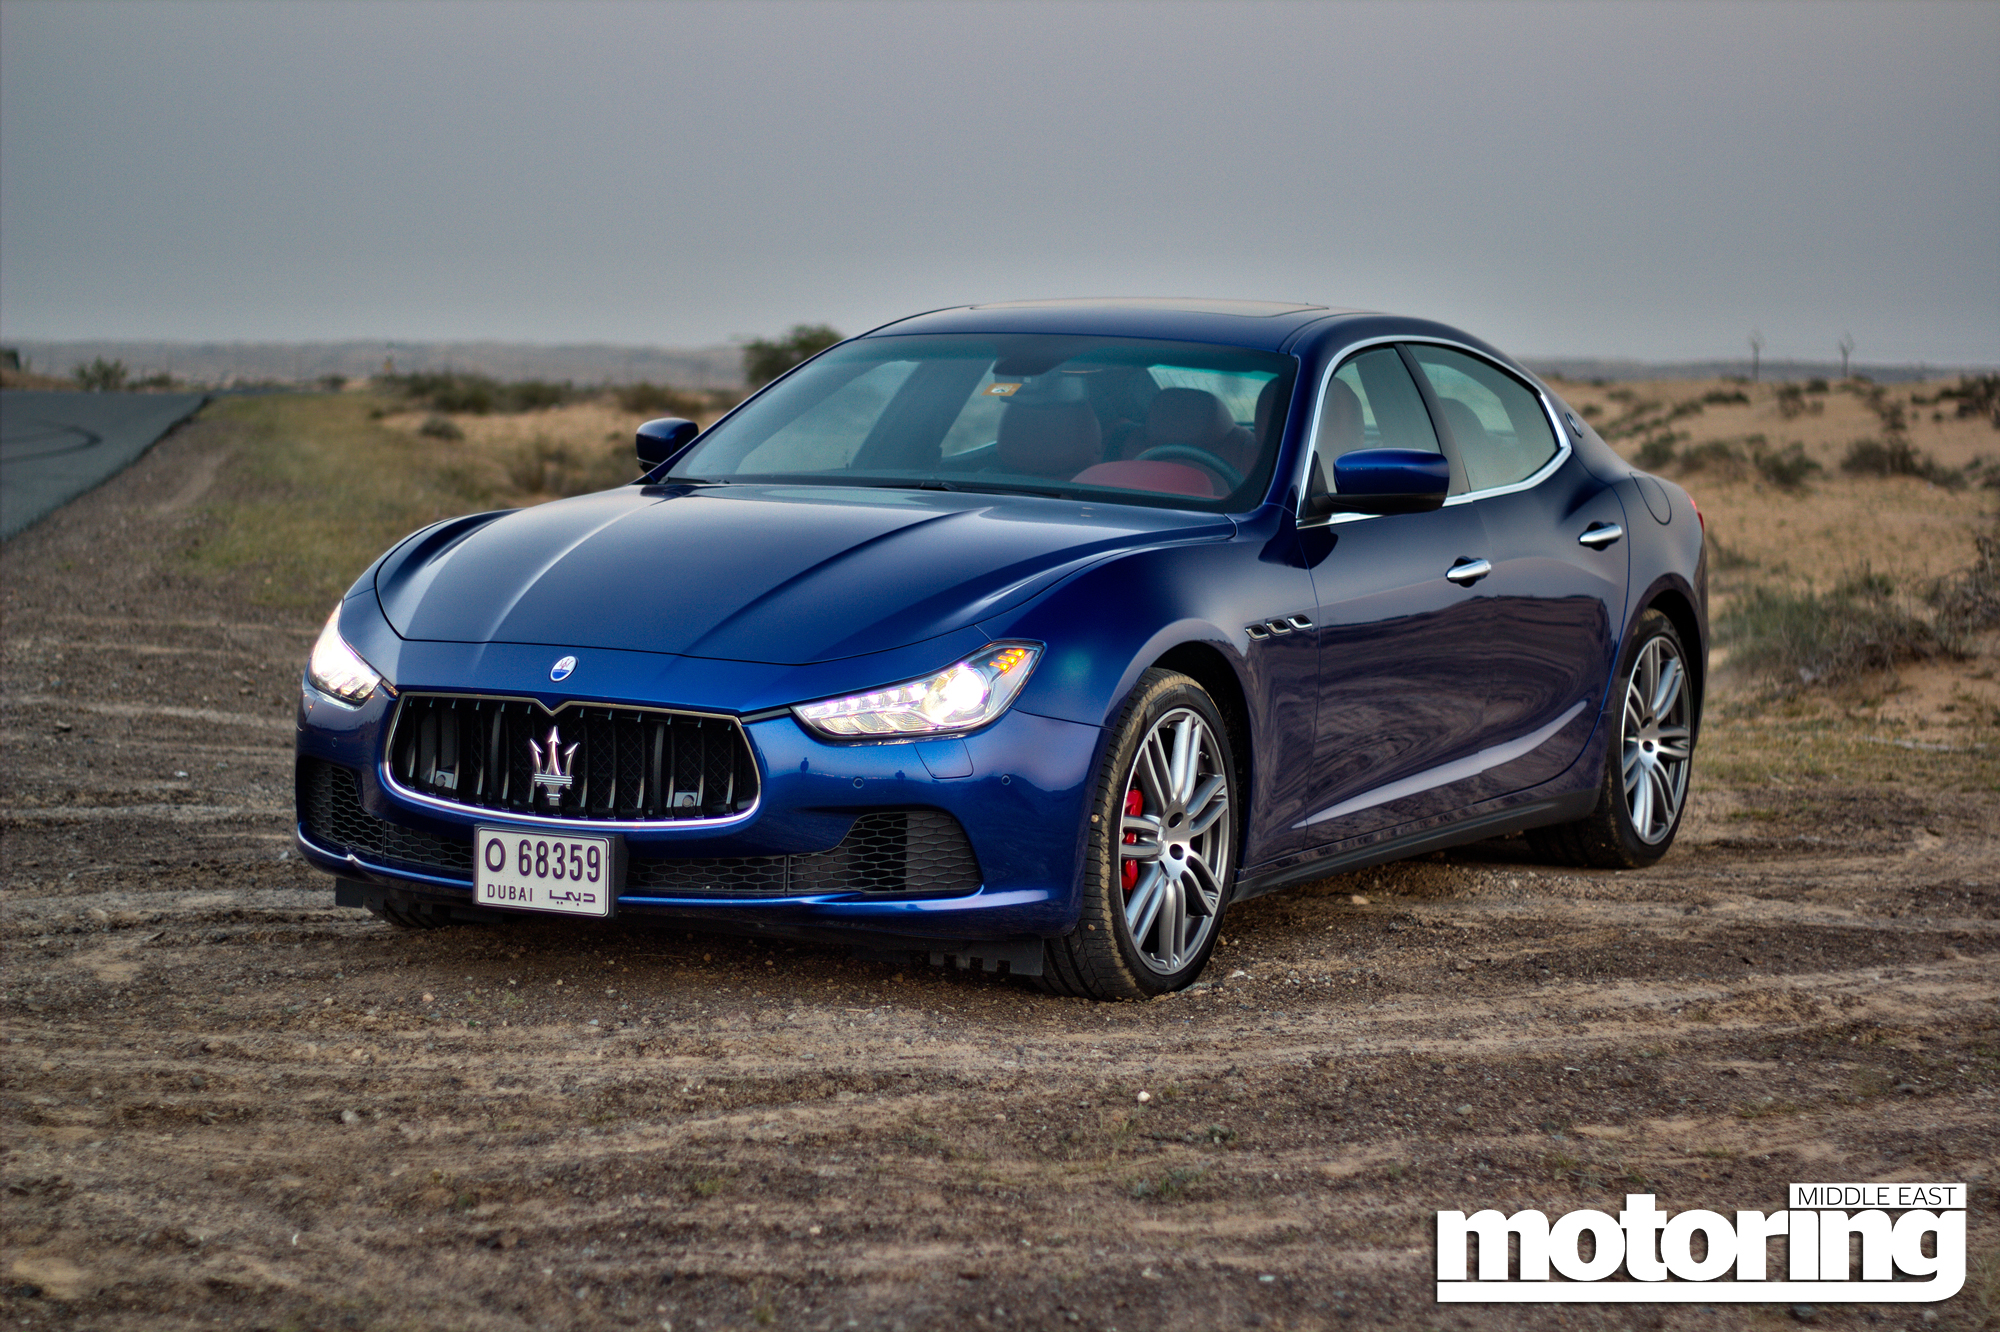 14 responses to 2014 maserati ghibli s review